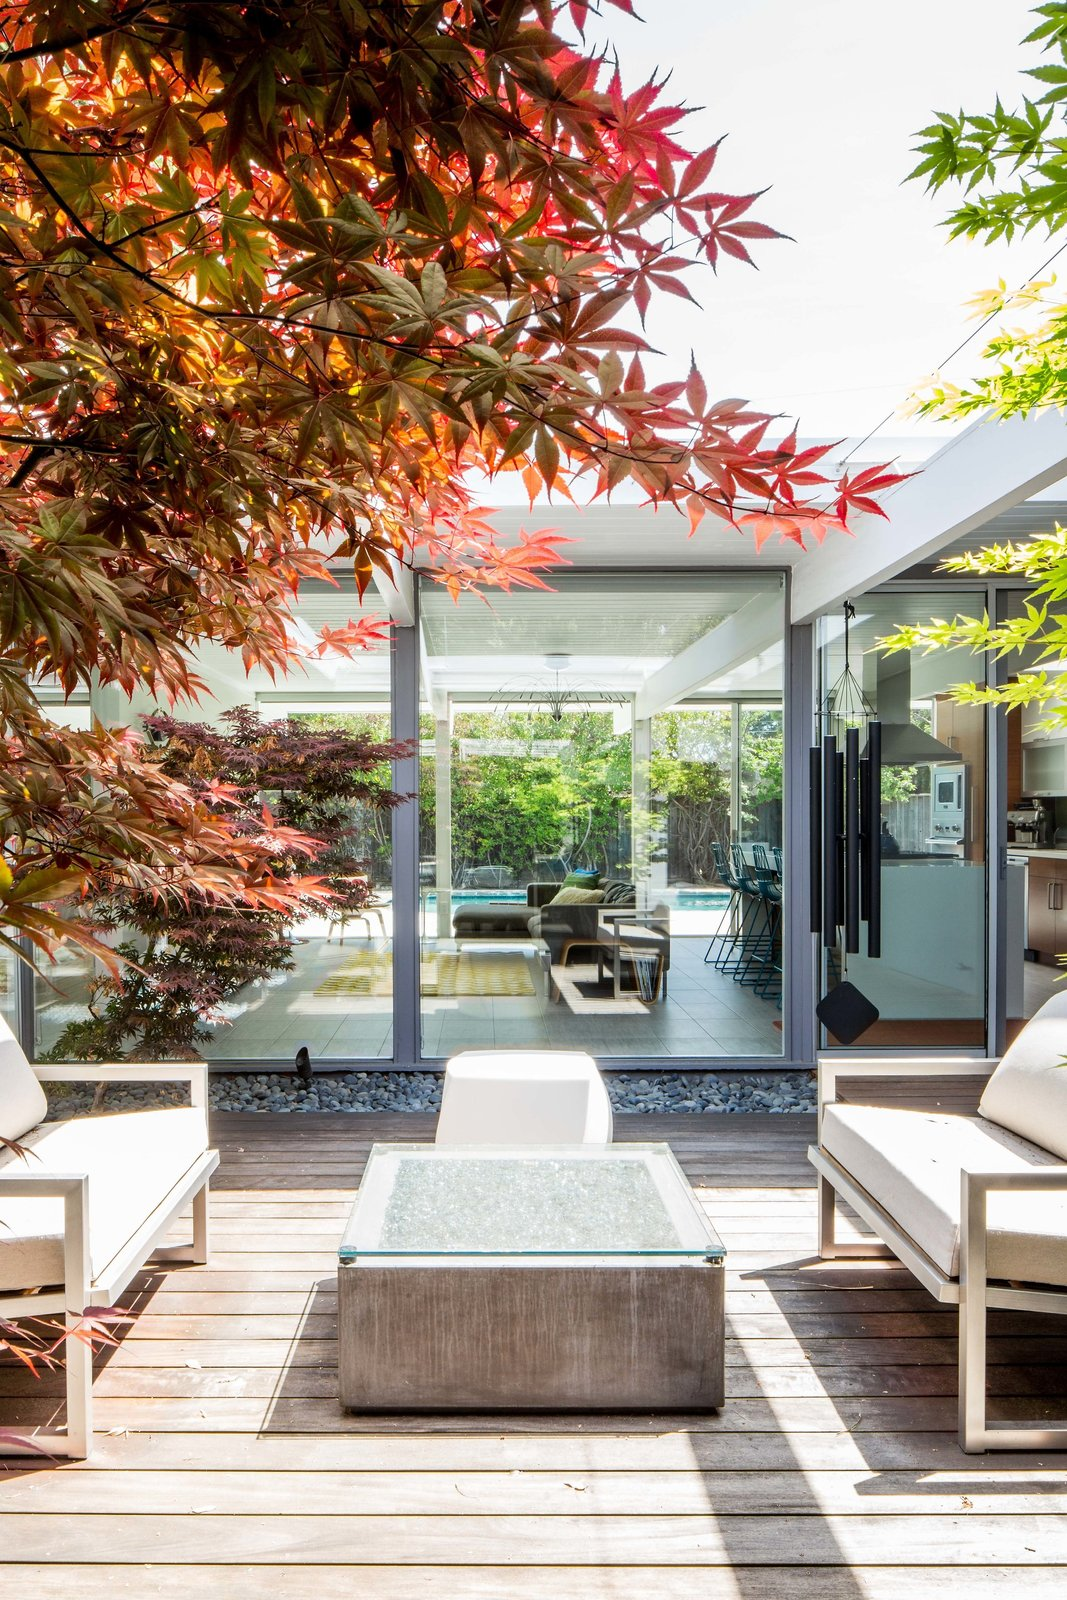 Outdoor, Small Patio, Porch, Deck, Hardscapes, Trees, and Wood Patio, Porch, Deck  Renovated Sunnyvale Eichler from An Interior Designer Launches Her Career by Renovating Her Family's Midcentury Eichler